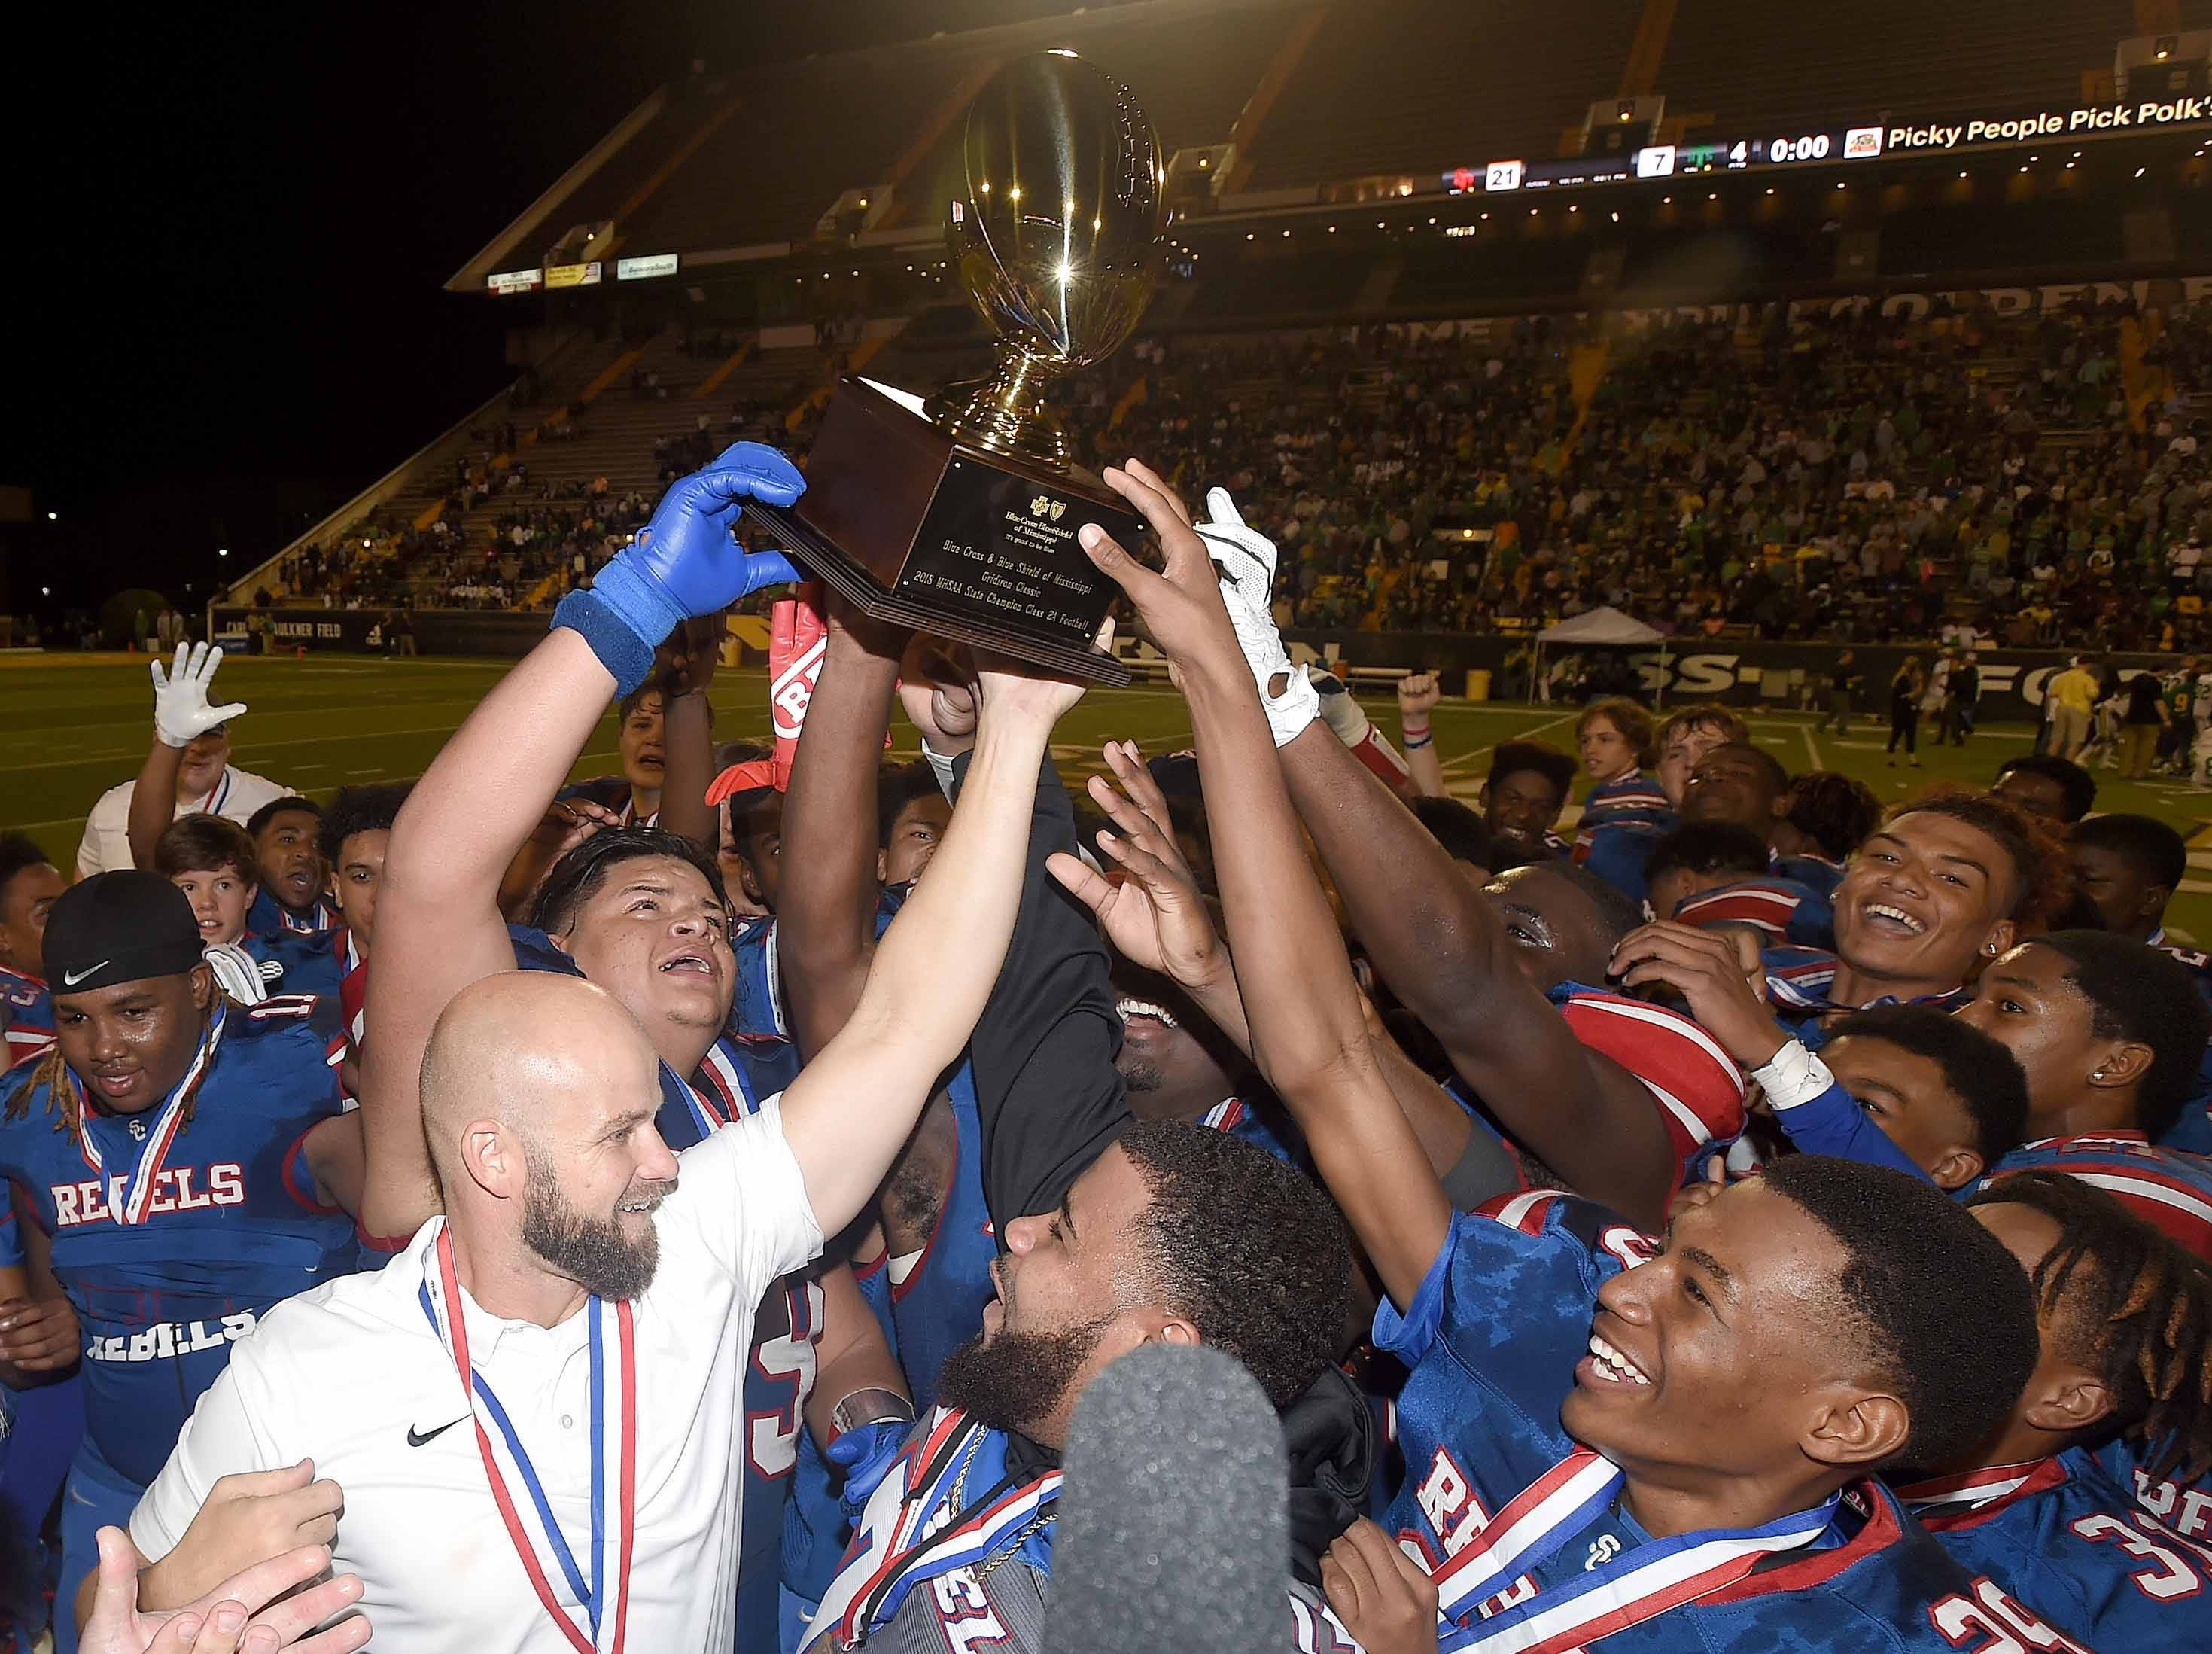 The Scott Central Rebels and head coach Devin Cooper celebrate with the Class 2A trophy after beating Taylorsville on Saturday, December 1, 2018, in the MHSAA BlueCross BlueShield Gridiron Classic High School Football Championships in M.M. Roberts Stadium on the University of Southern Mississippi campus in Hattiesburg, Miss.